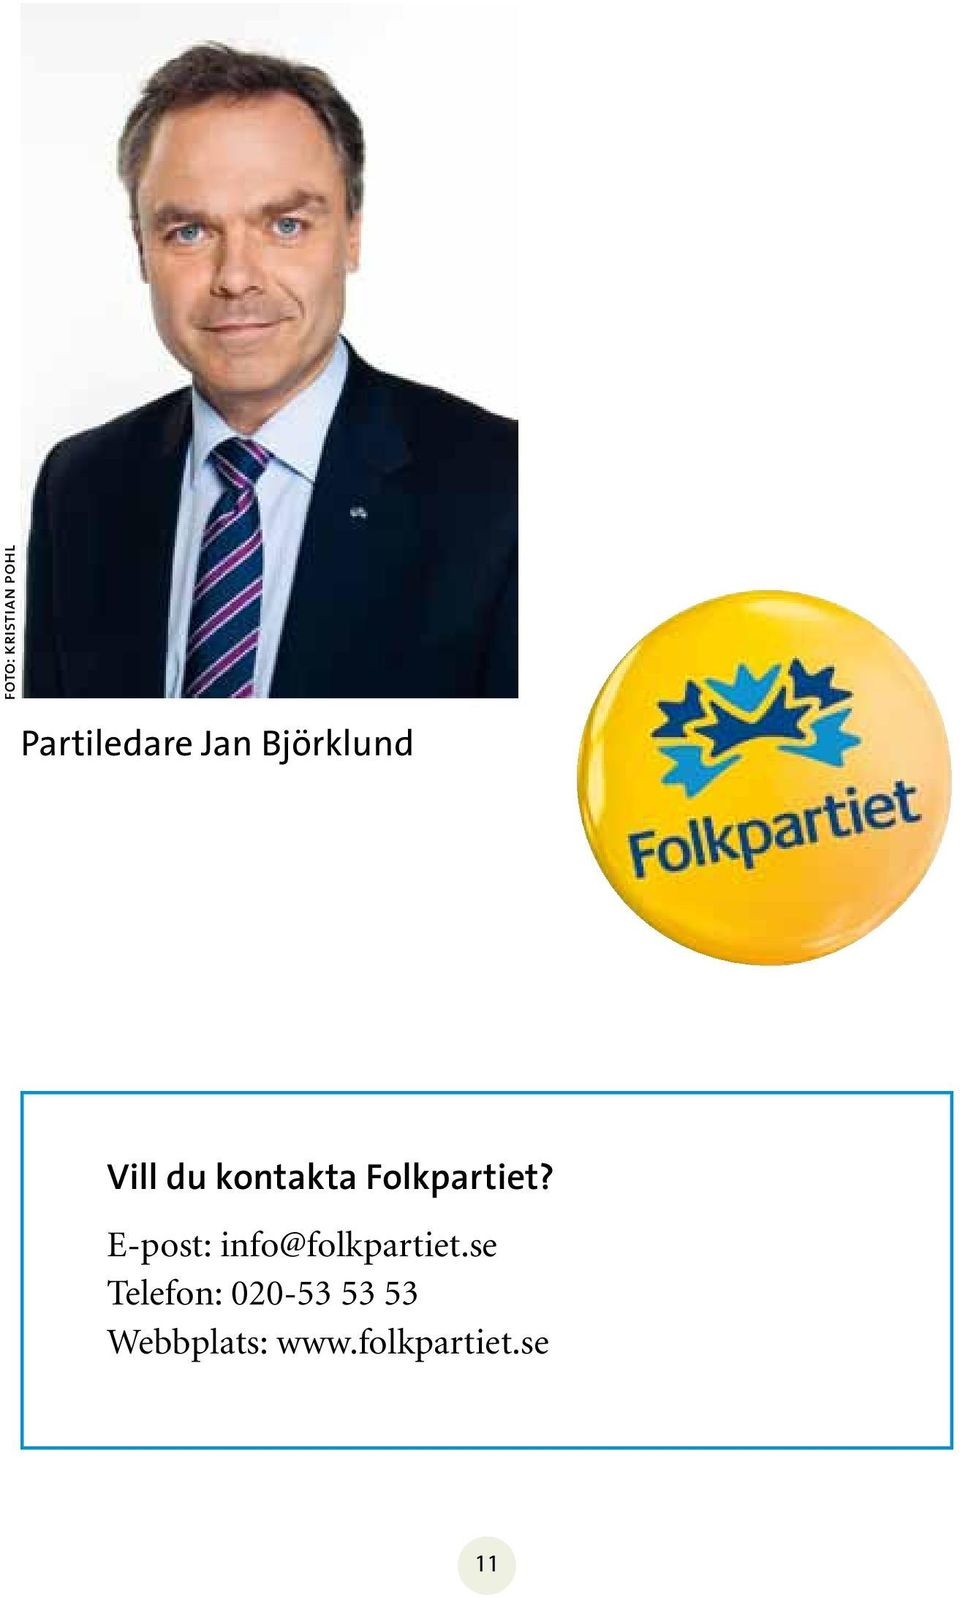 E-post: info@folkpartiet.